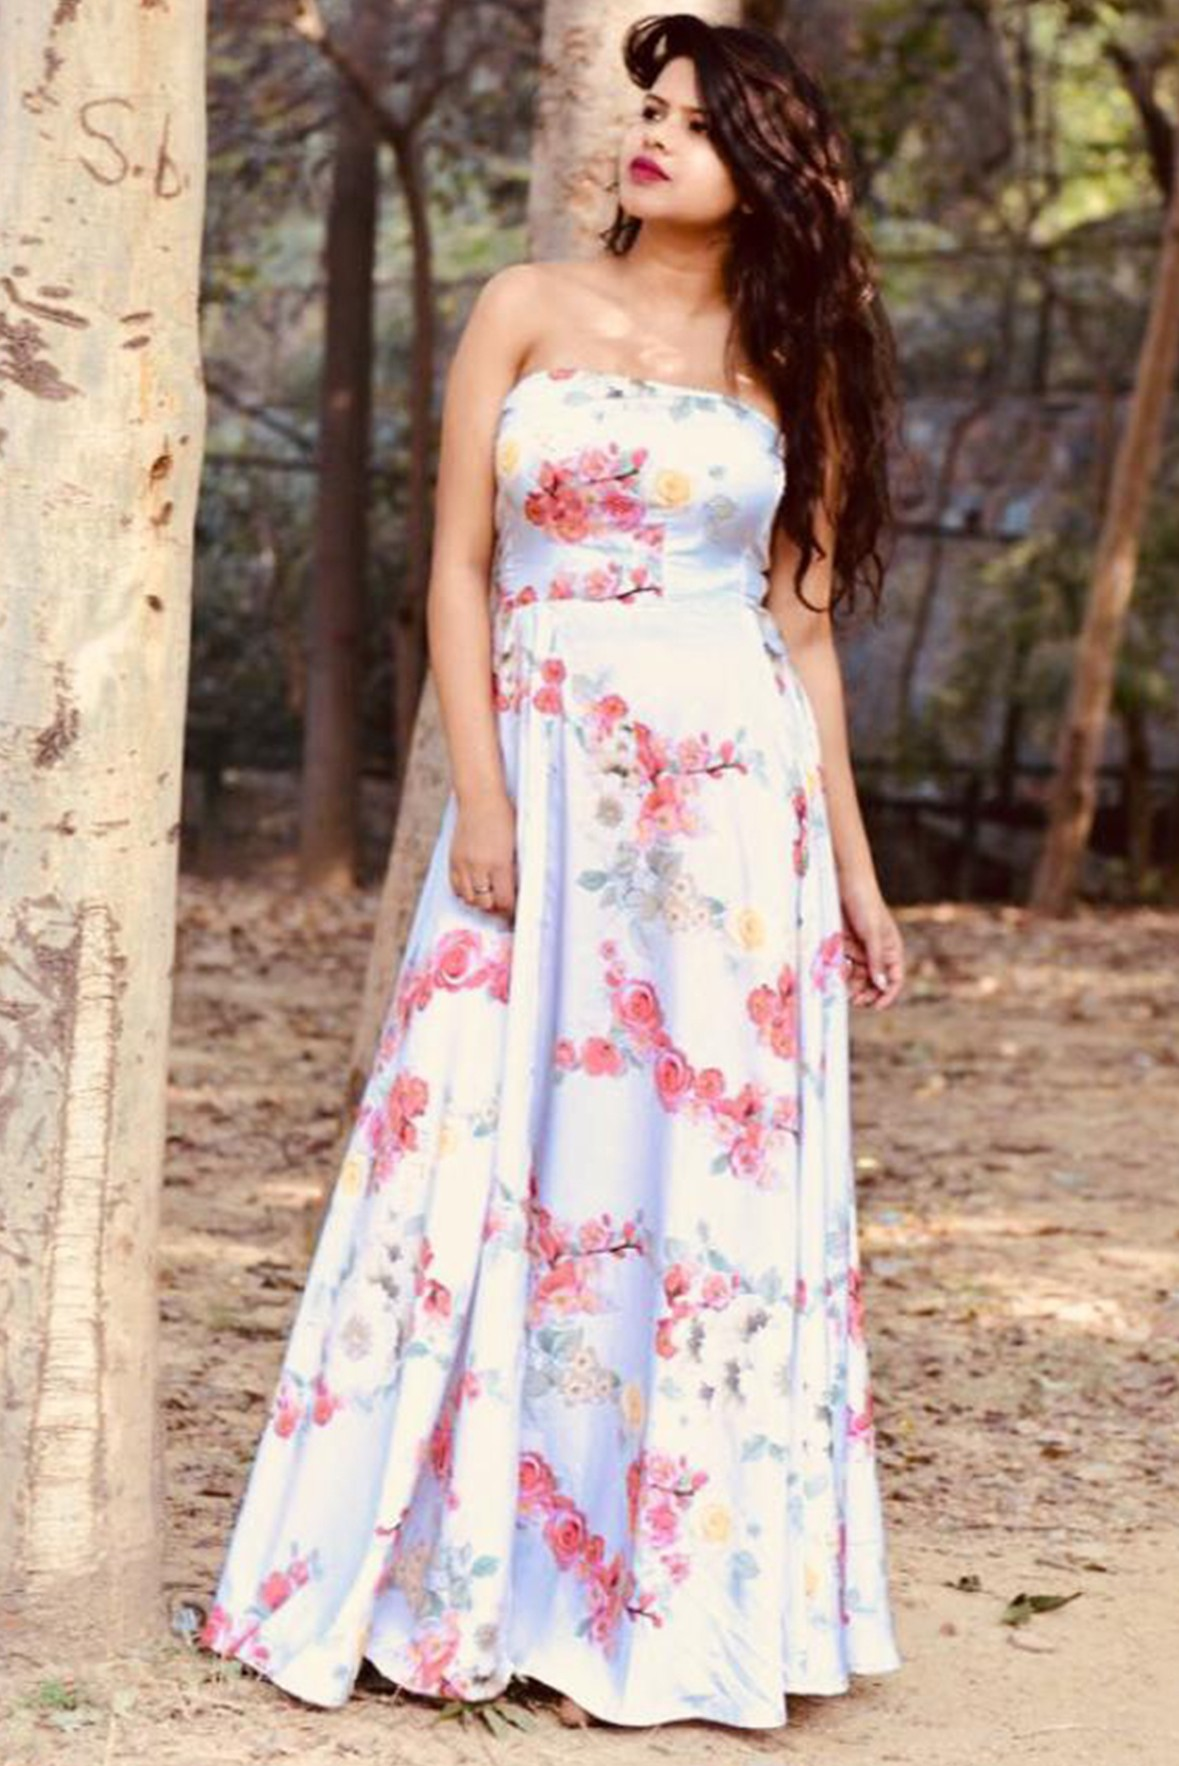 Blossom and bloom dress